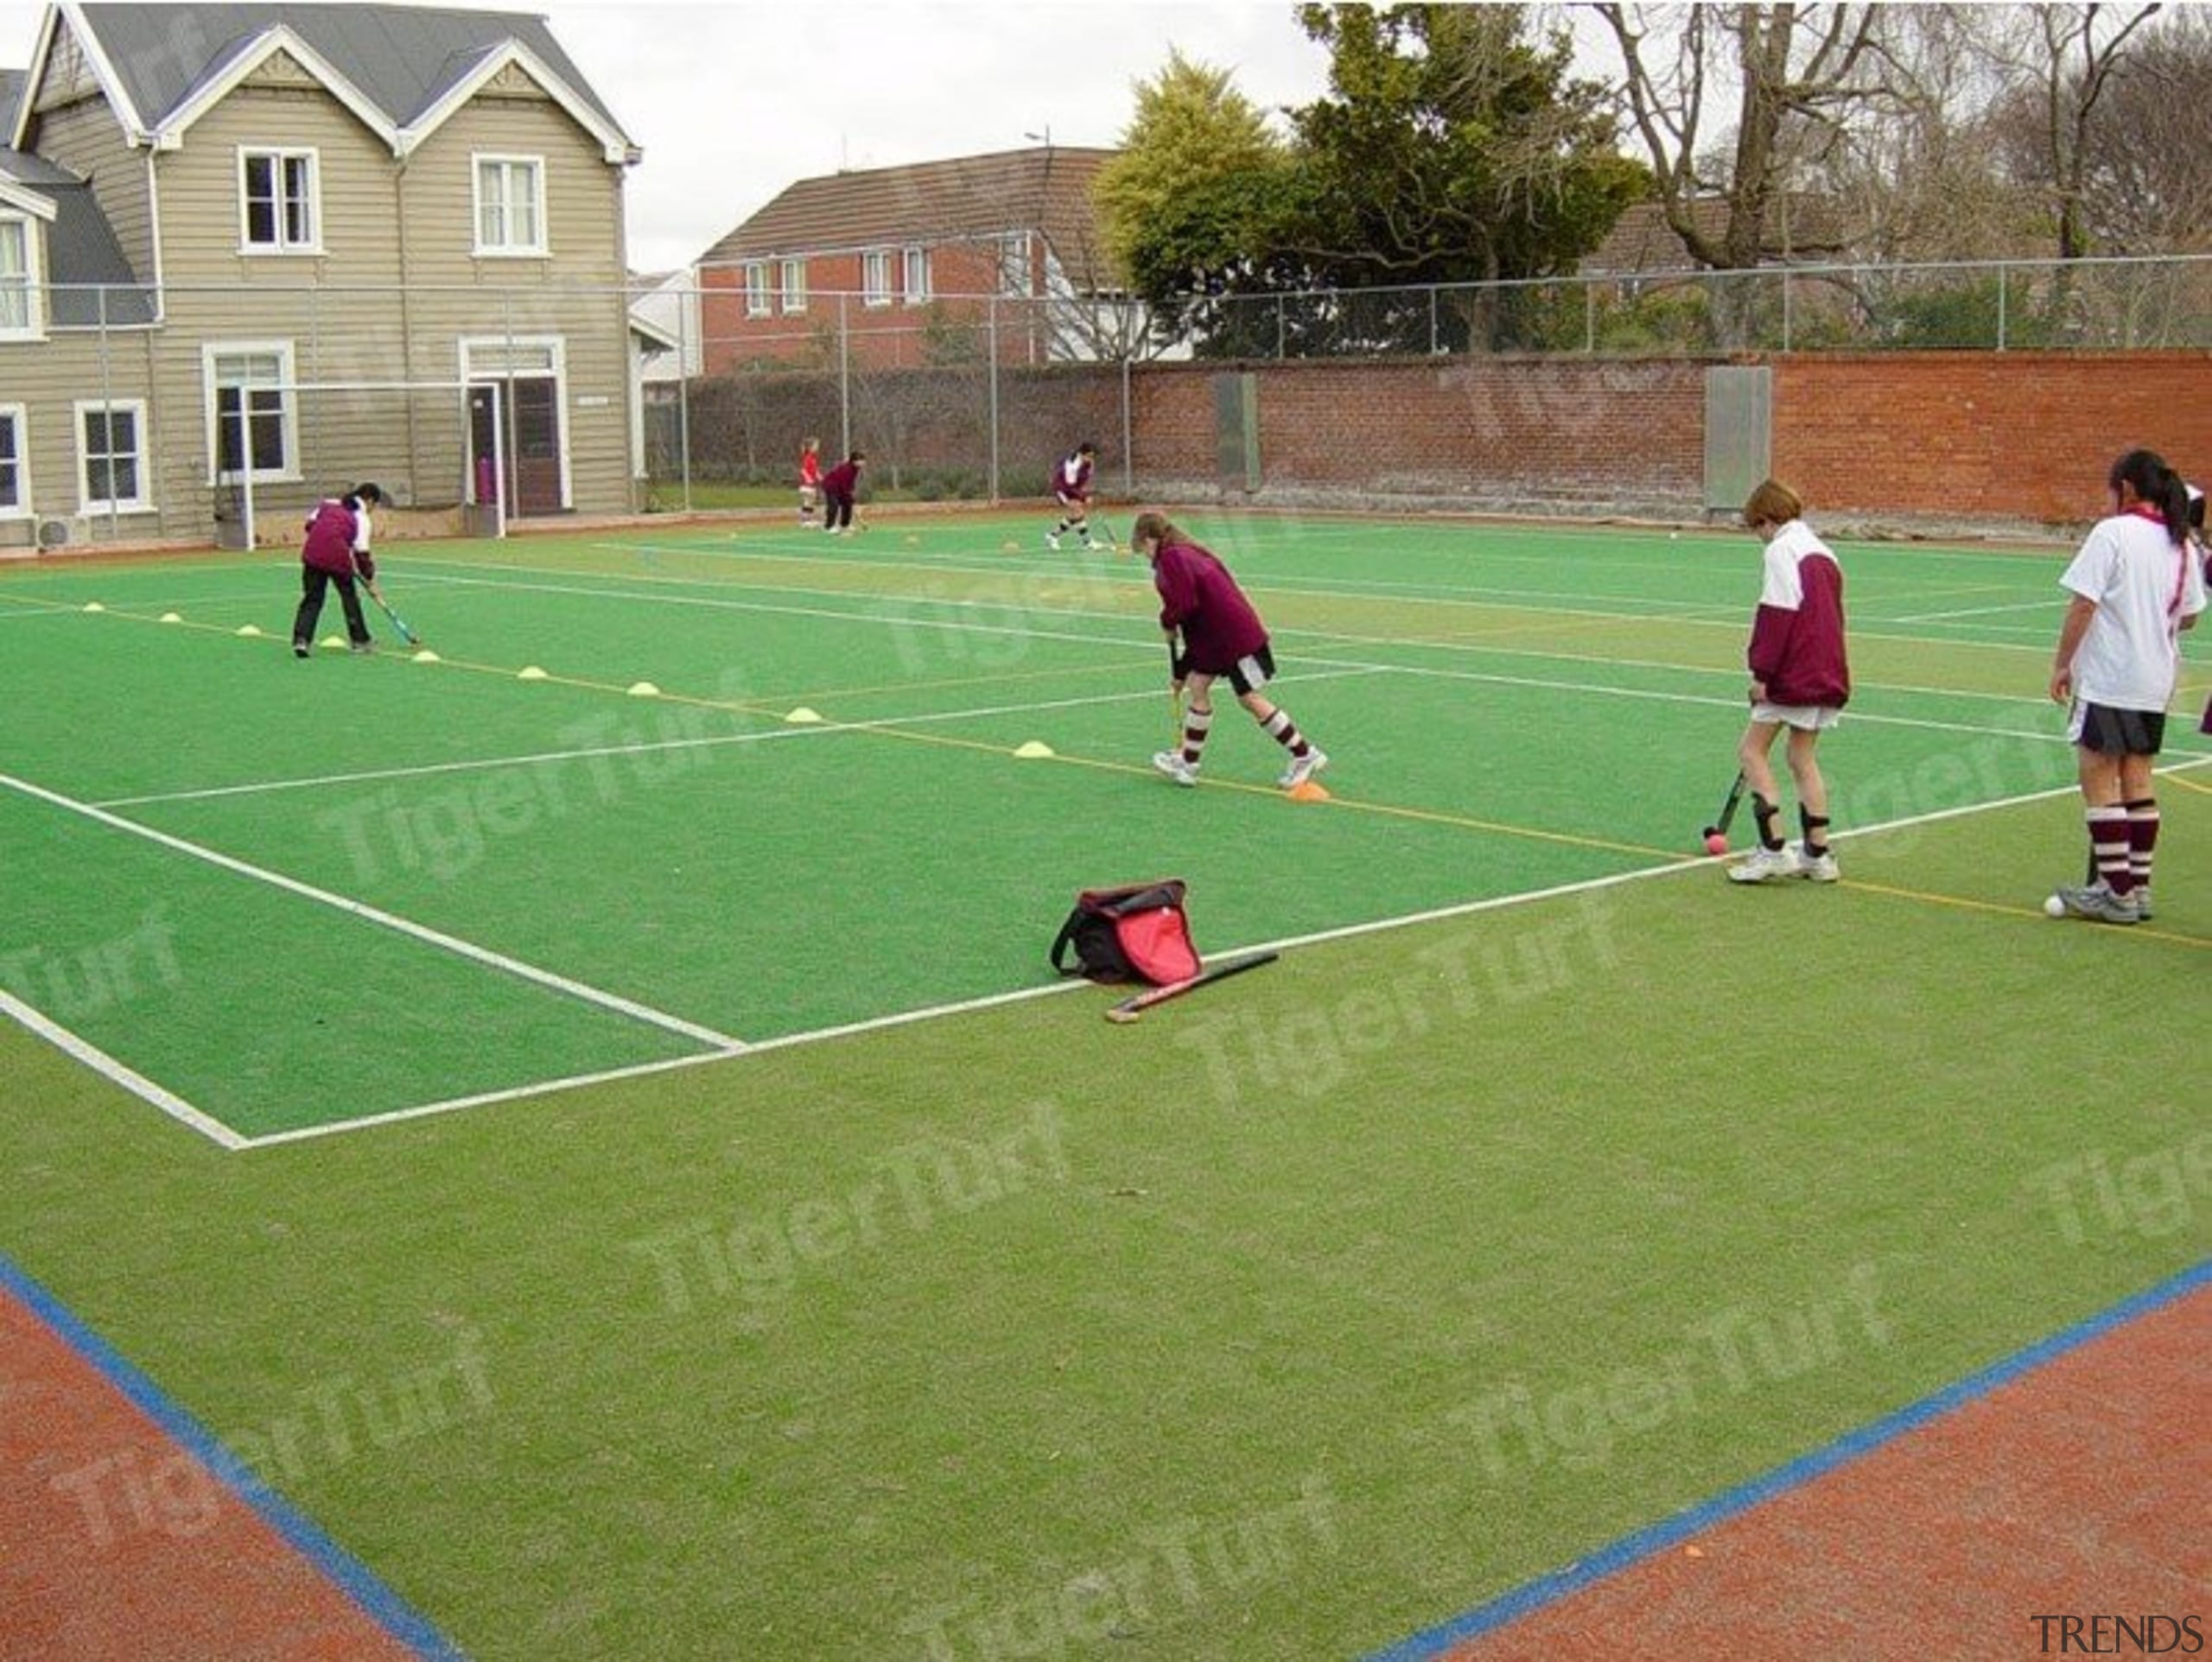 Multi-sport surfaces are designed and installed to meet artificial turf, ball, ball game, competition, competition event, football, games, grass, lawn, leisure, net, plant, player, playground, recreation, sport venue, sports, sports training, stadium, team sport, tournament, green